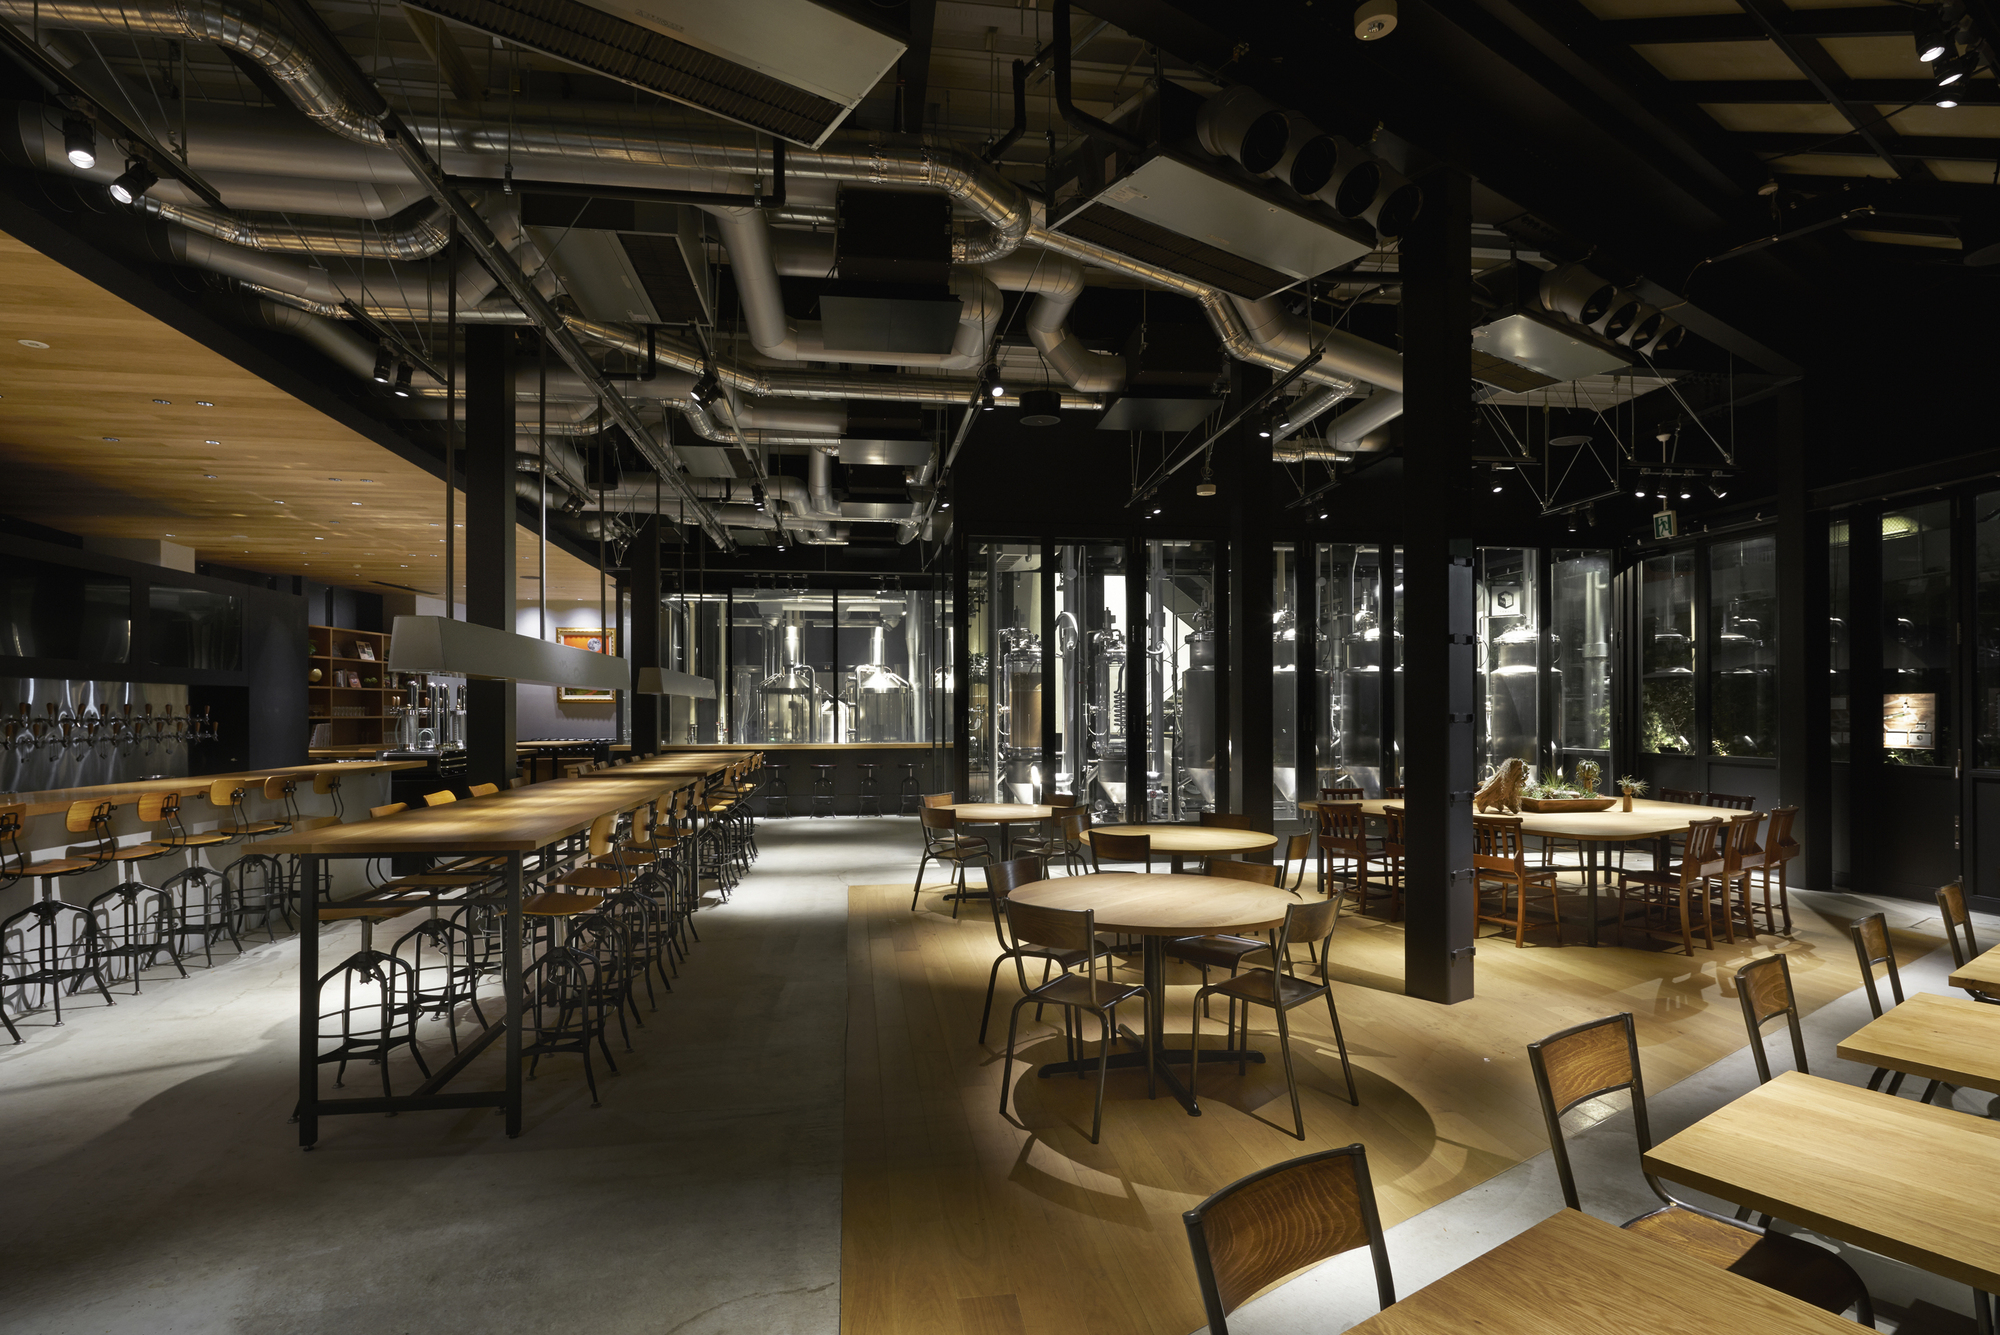 3d Wallpaper Pool Table Spring Valley Brewery Tokyo General Design Archdaily